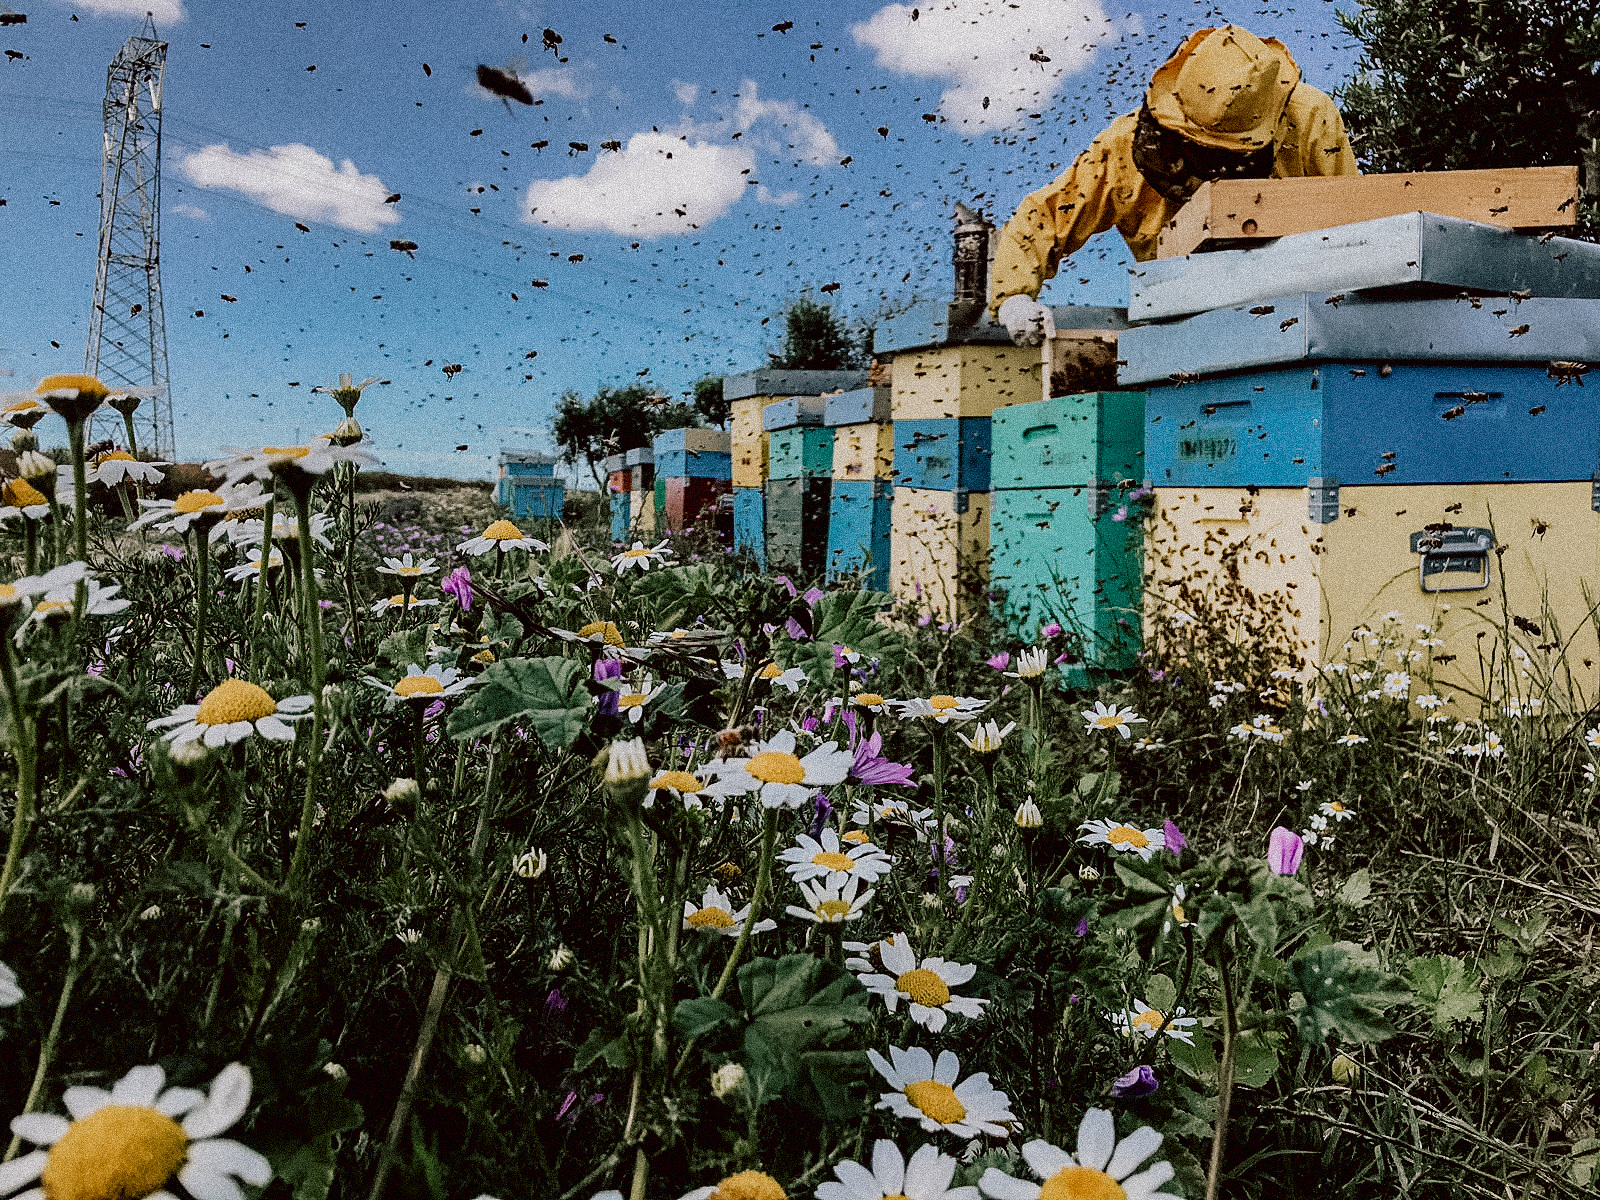 FOLLOW THE BEES